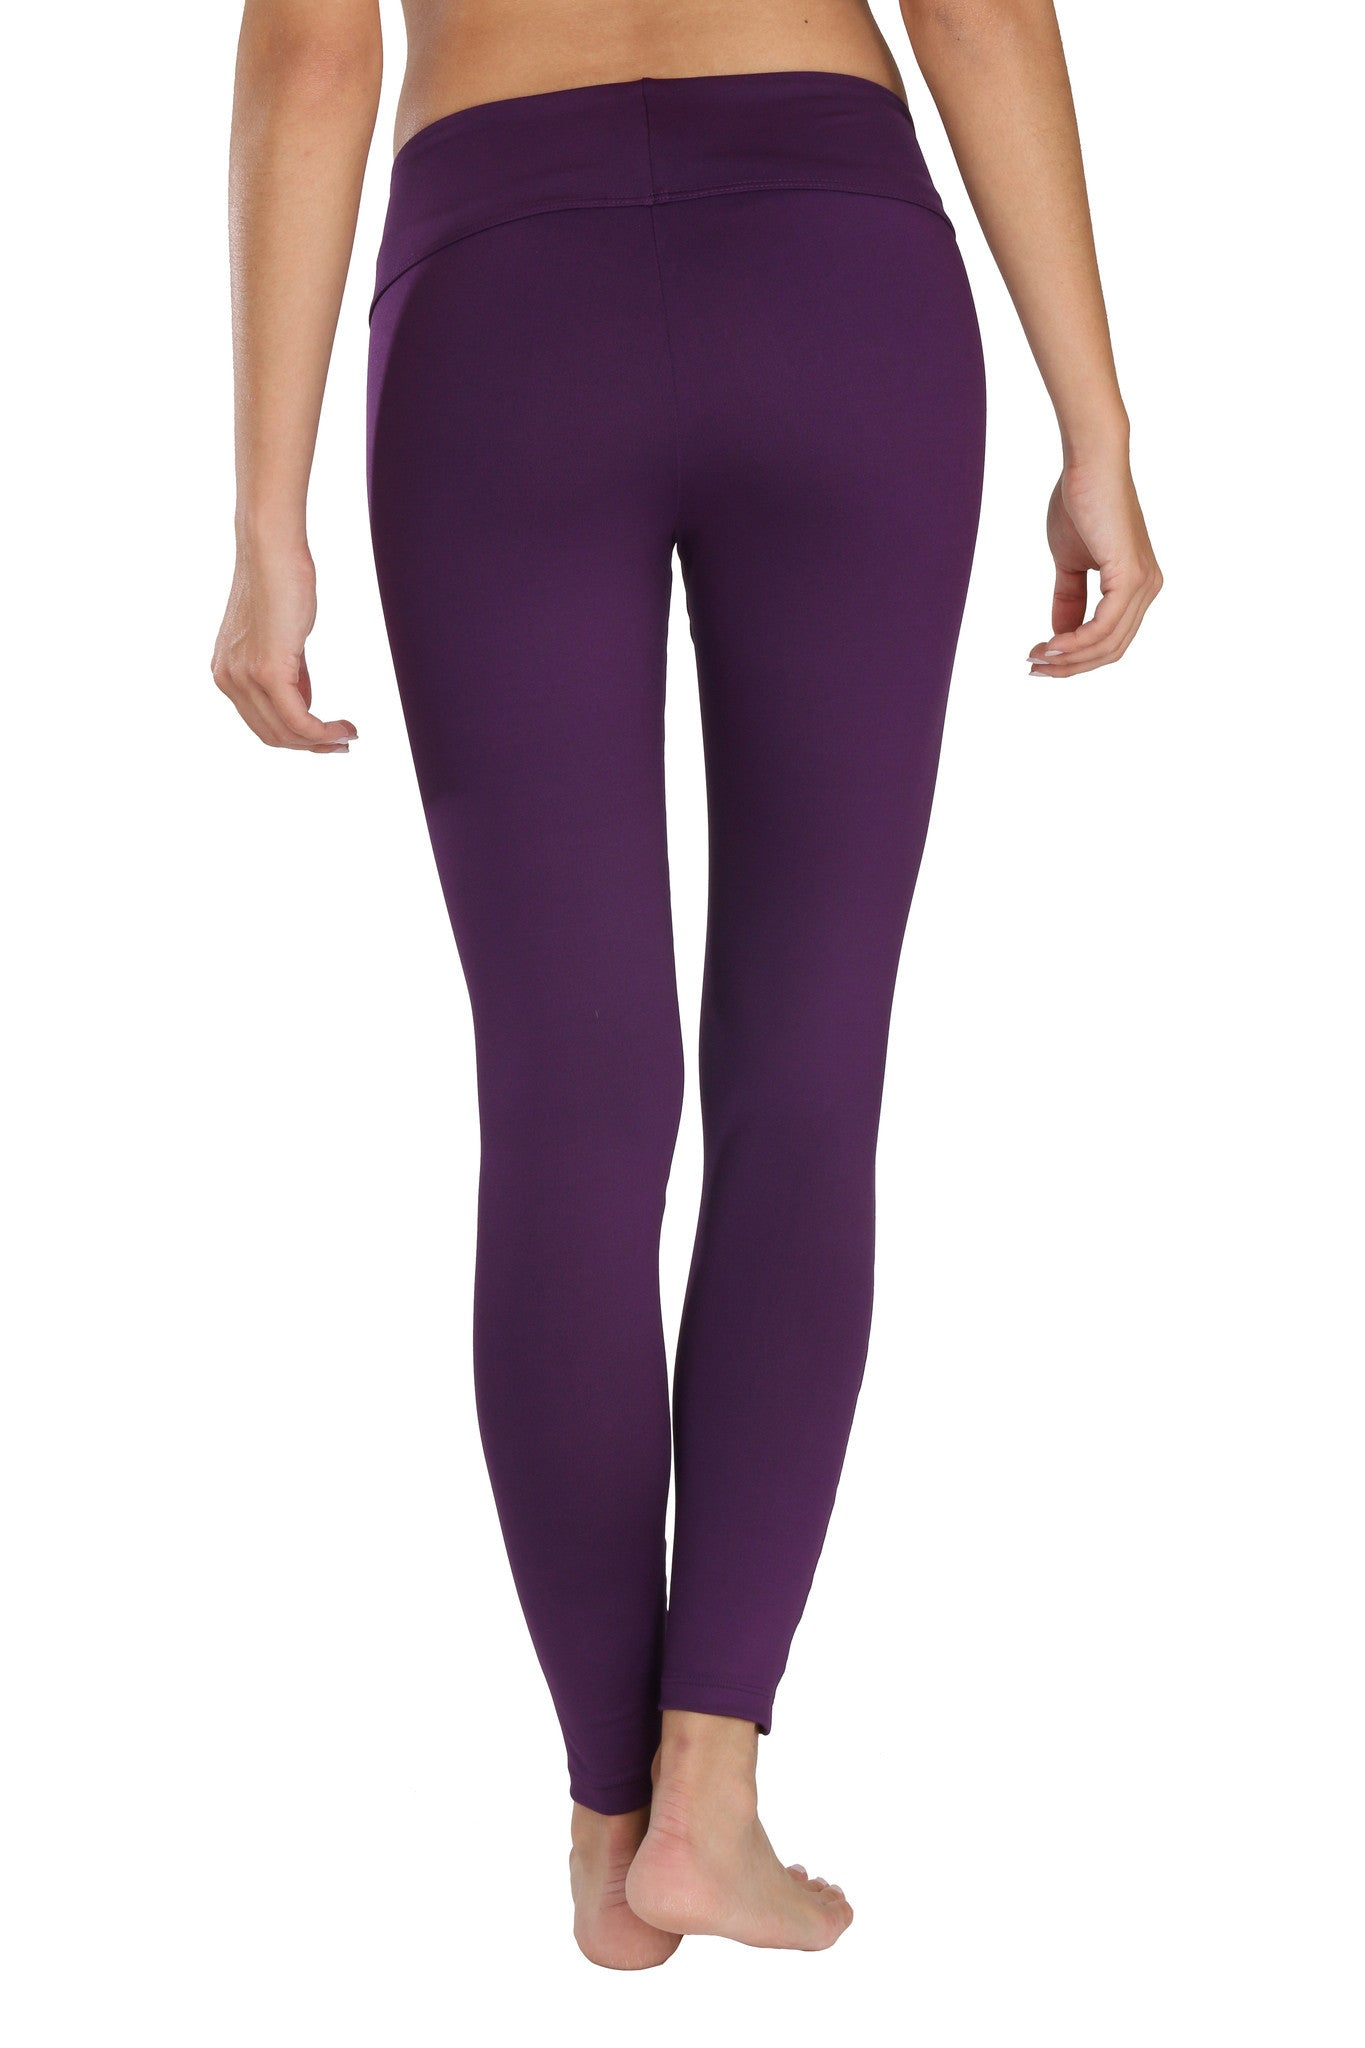 Moto Mesh Purple - Leggings - Butterfly Armor